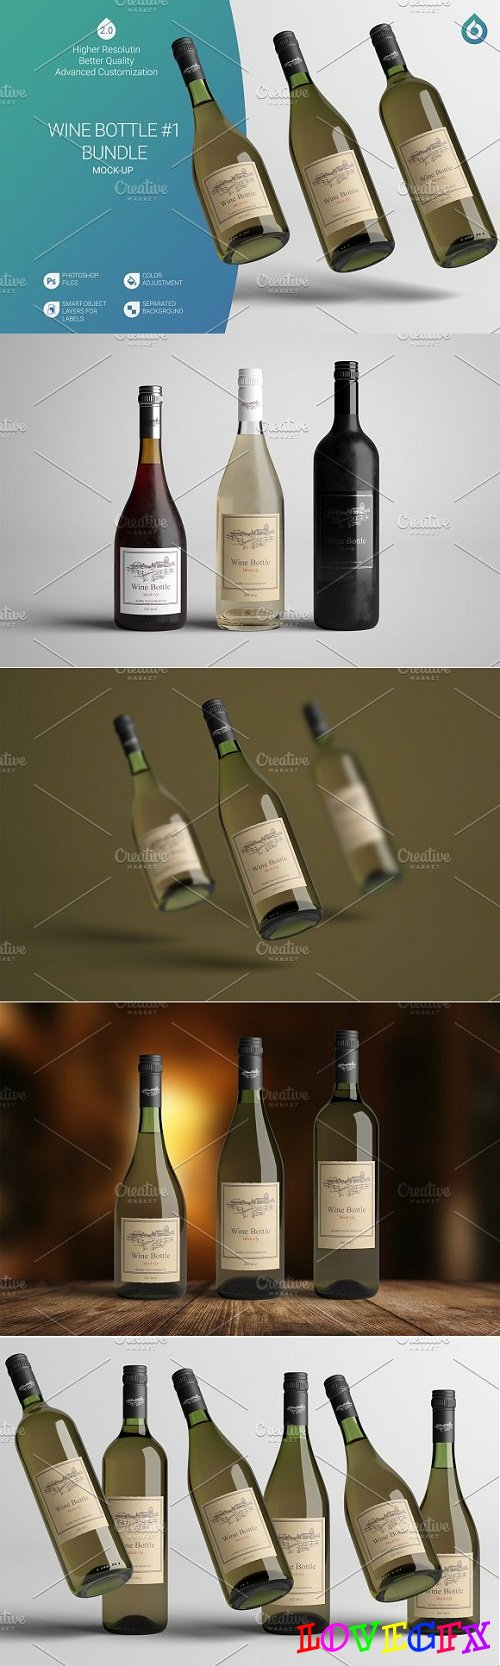 Wine Bottle Mock-Up B1 V2.0 3032807